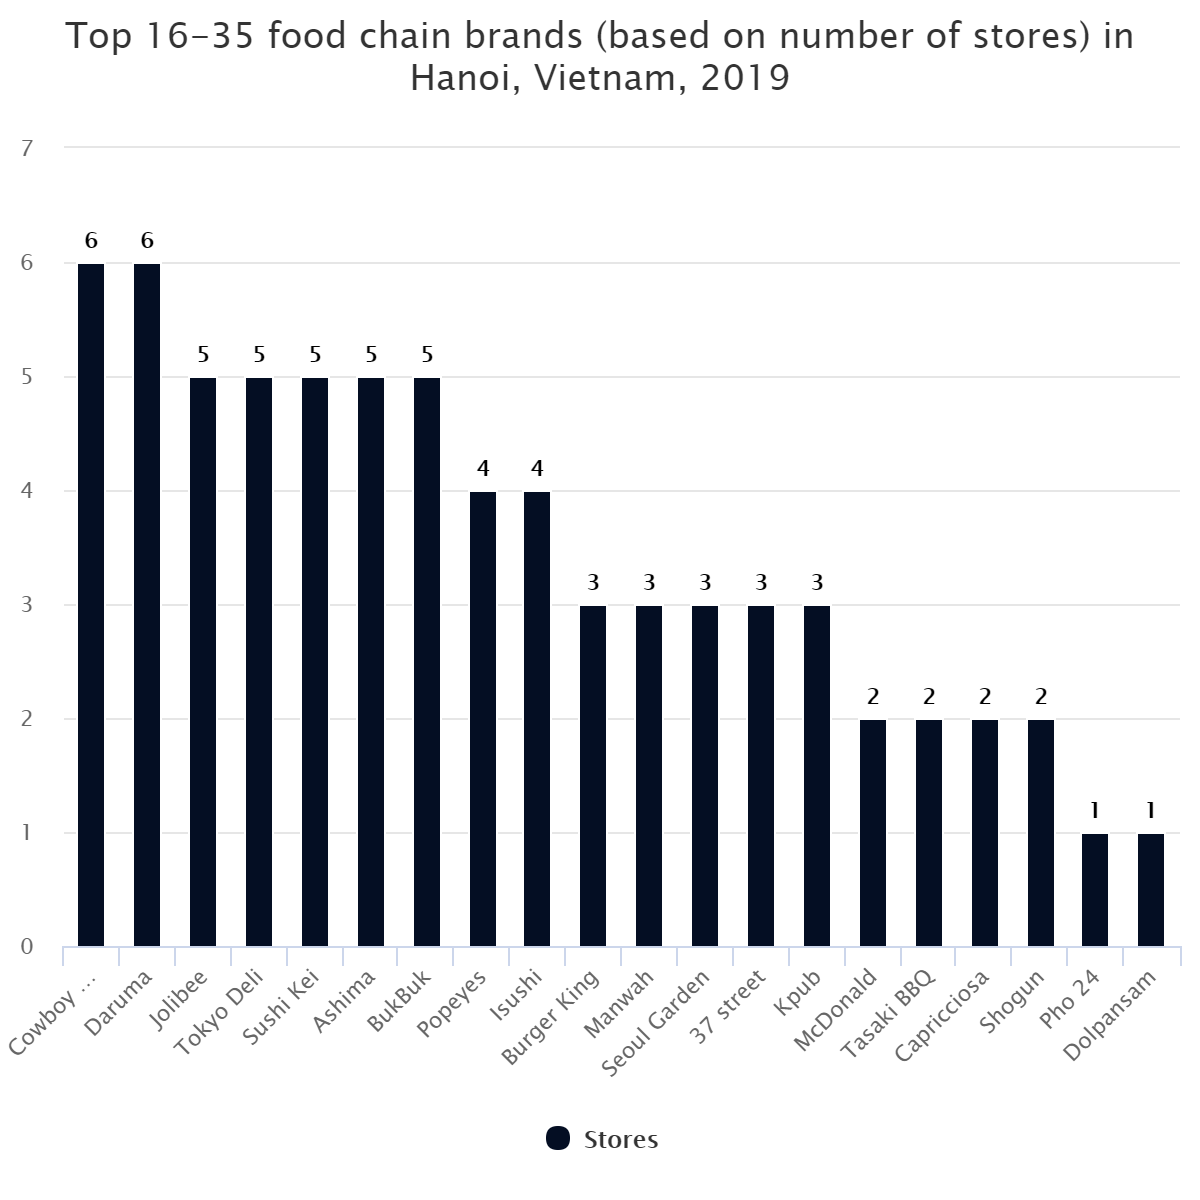 Top 16-35 food chain brands (based on number of stores) in Hanoi, Vietnam, 2019